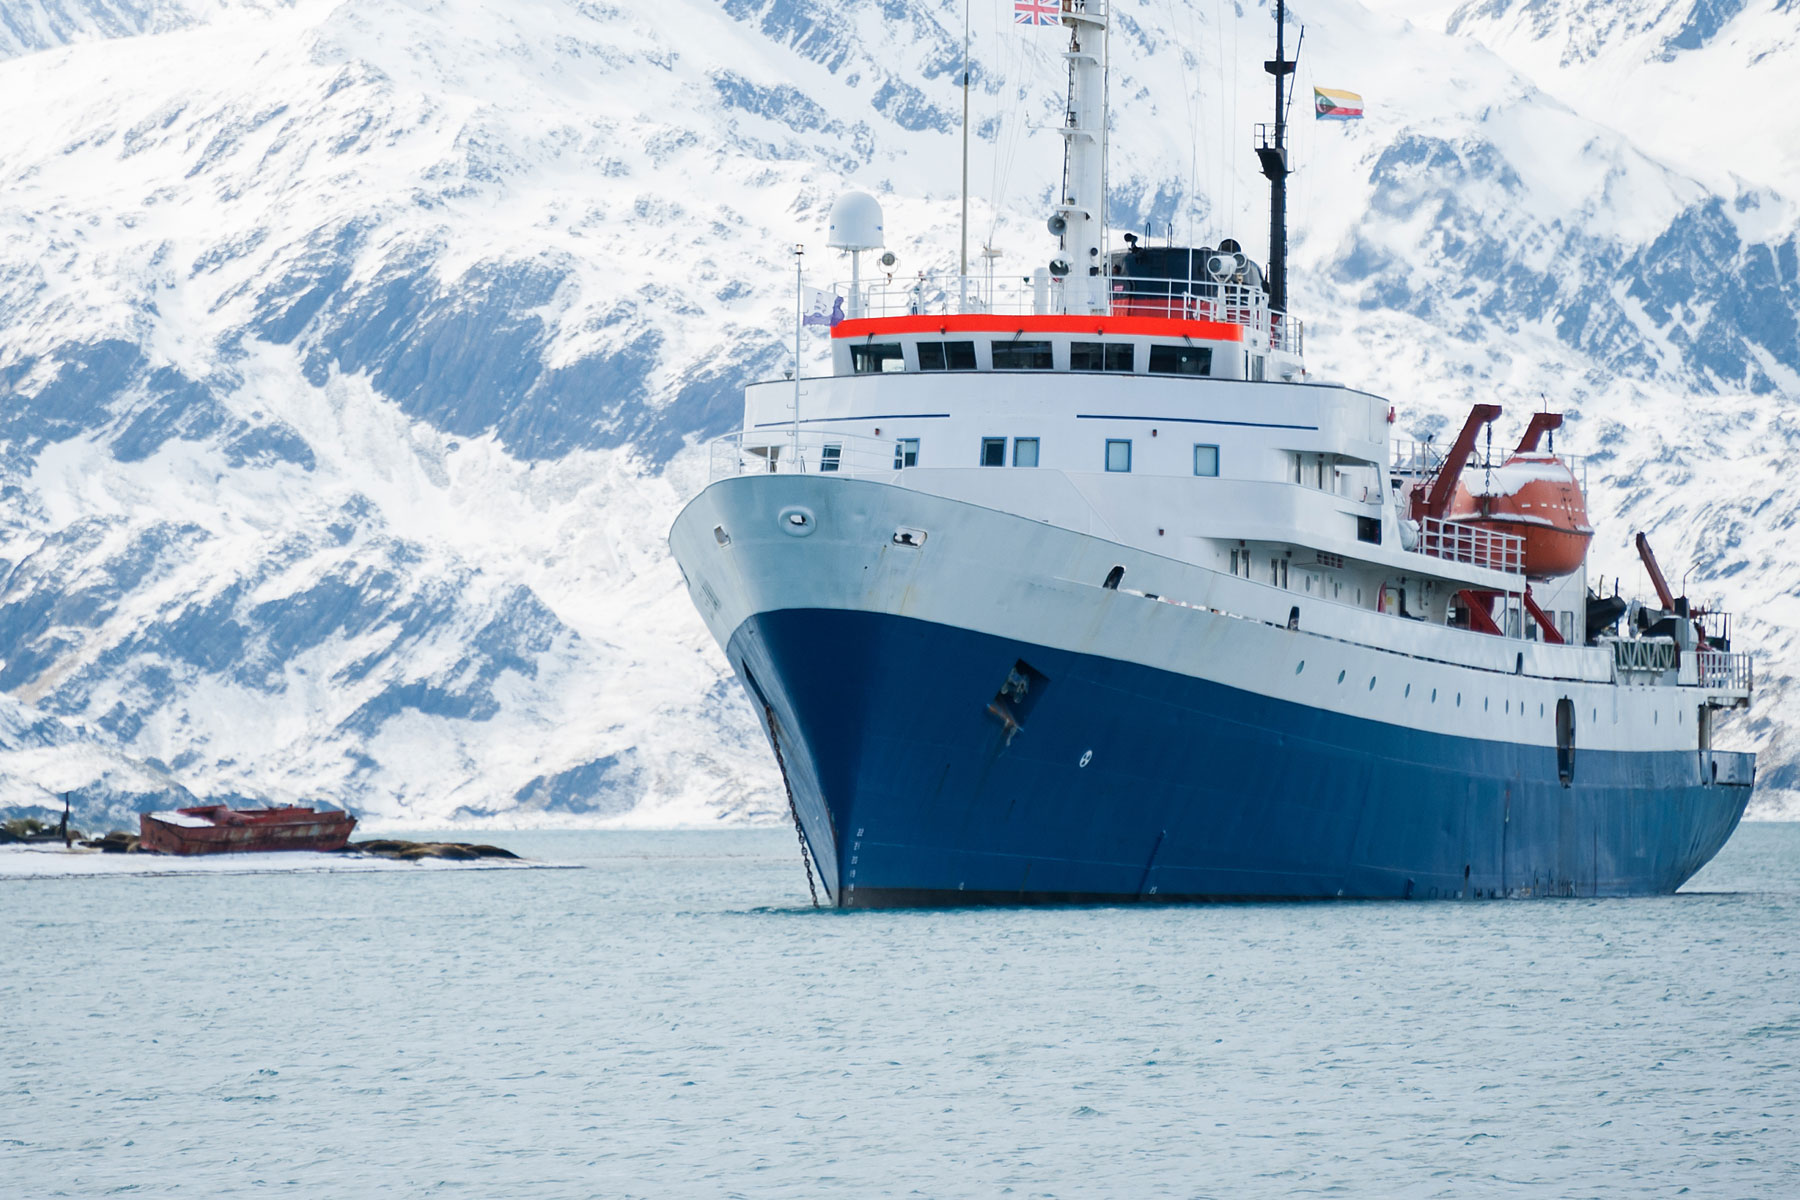 Ship-seq: Nanopore sequencing of polar microbes on board research vessels